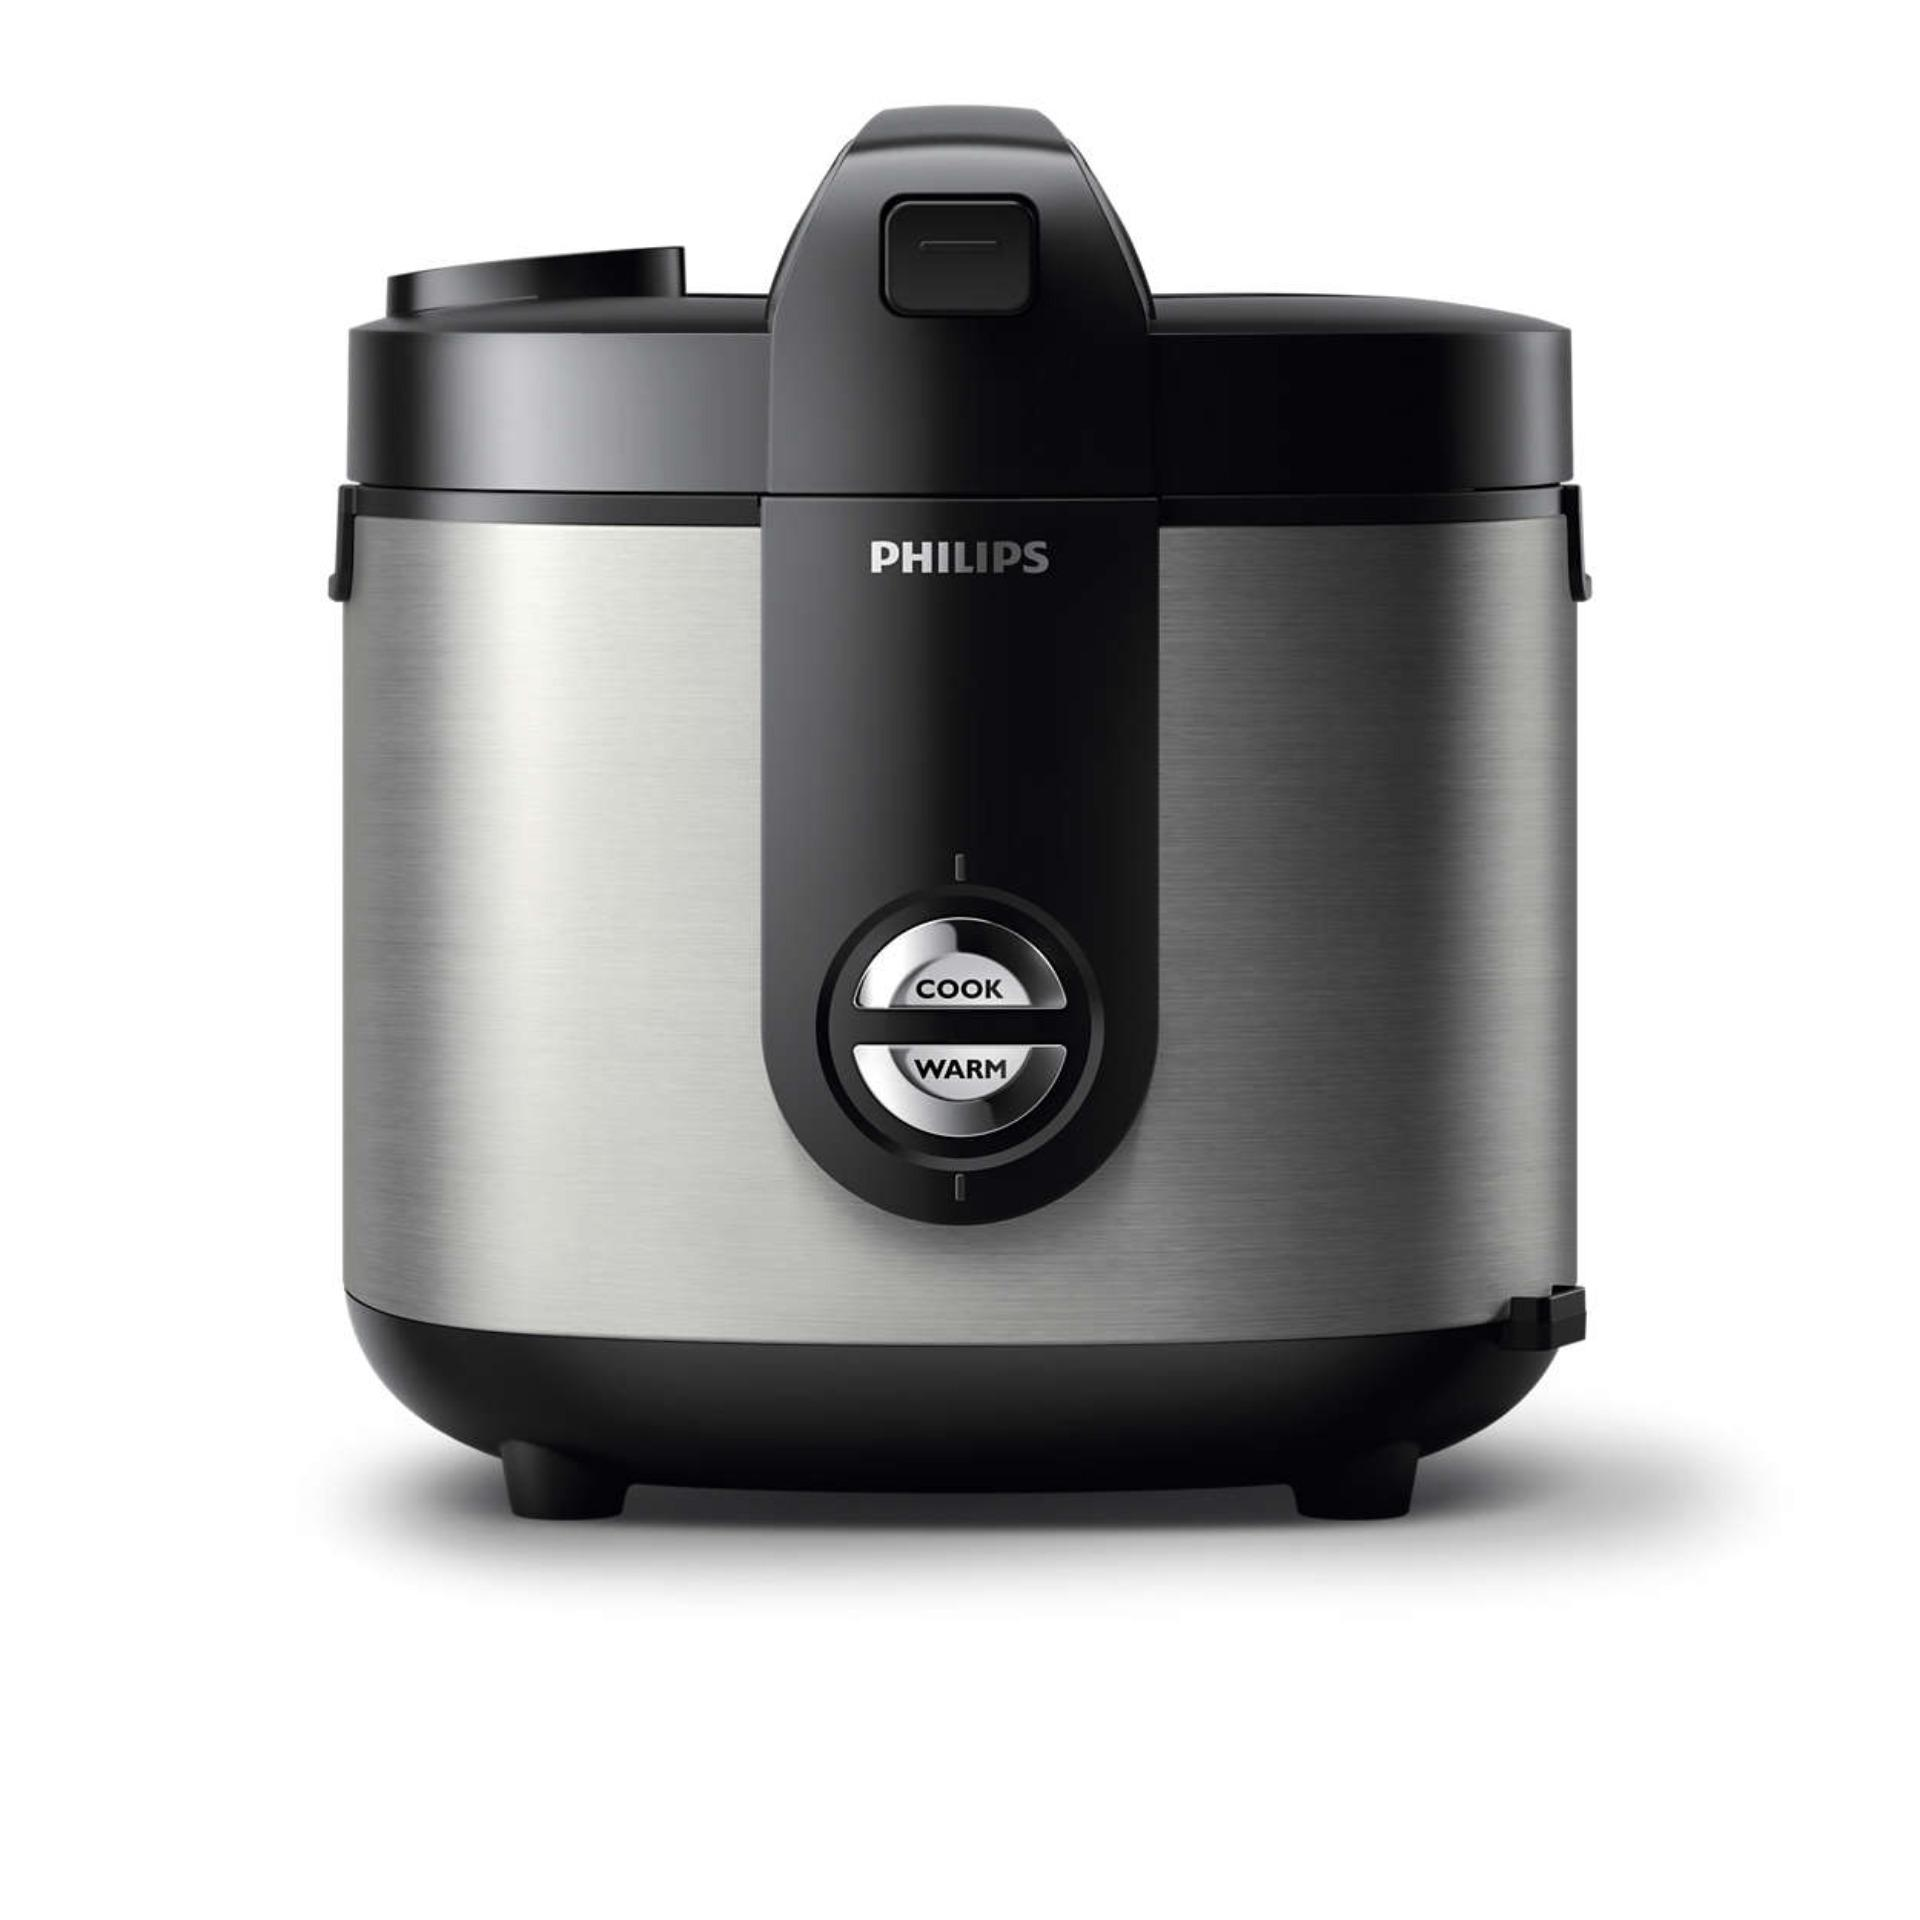 Review Tentang Philips Rice Cooker Super Premium Hd3128 33 Silver